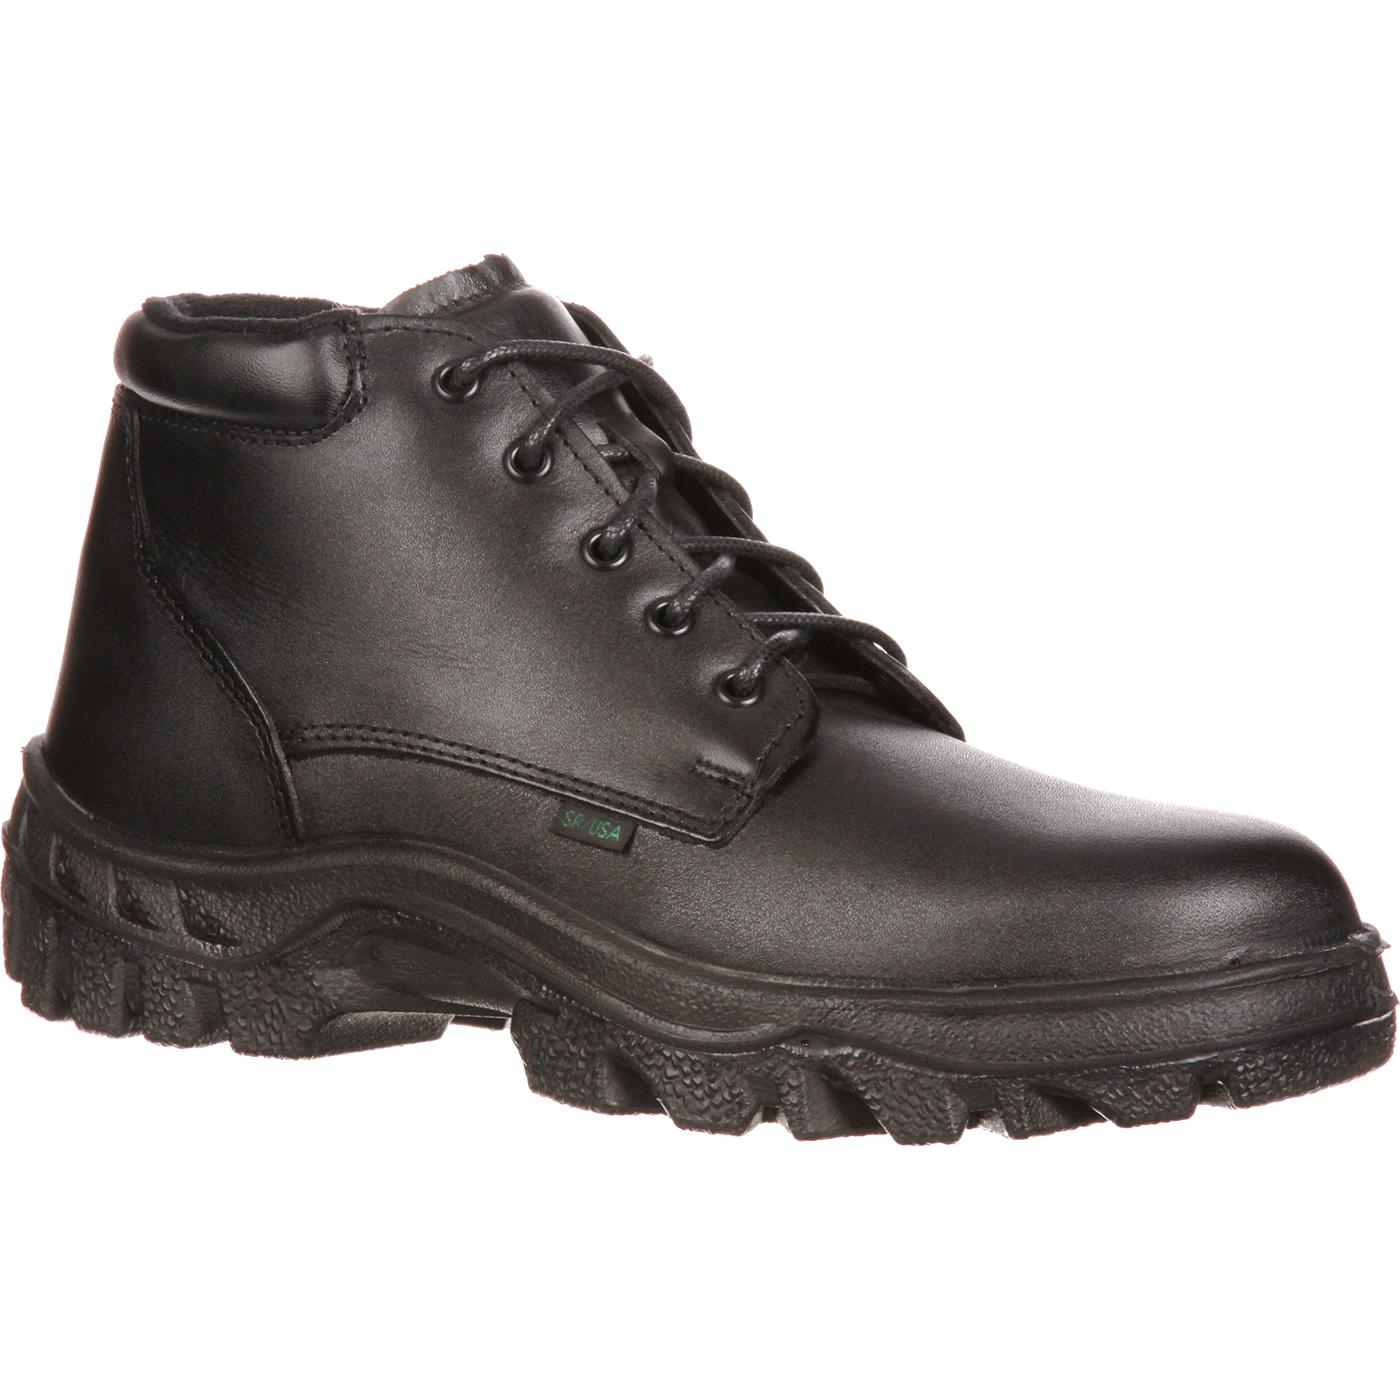 Postal Approved Duty Chukka Boots Rocky Tmc Fq0005005